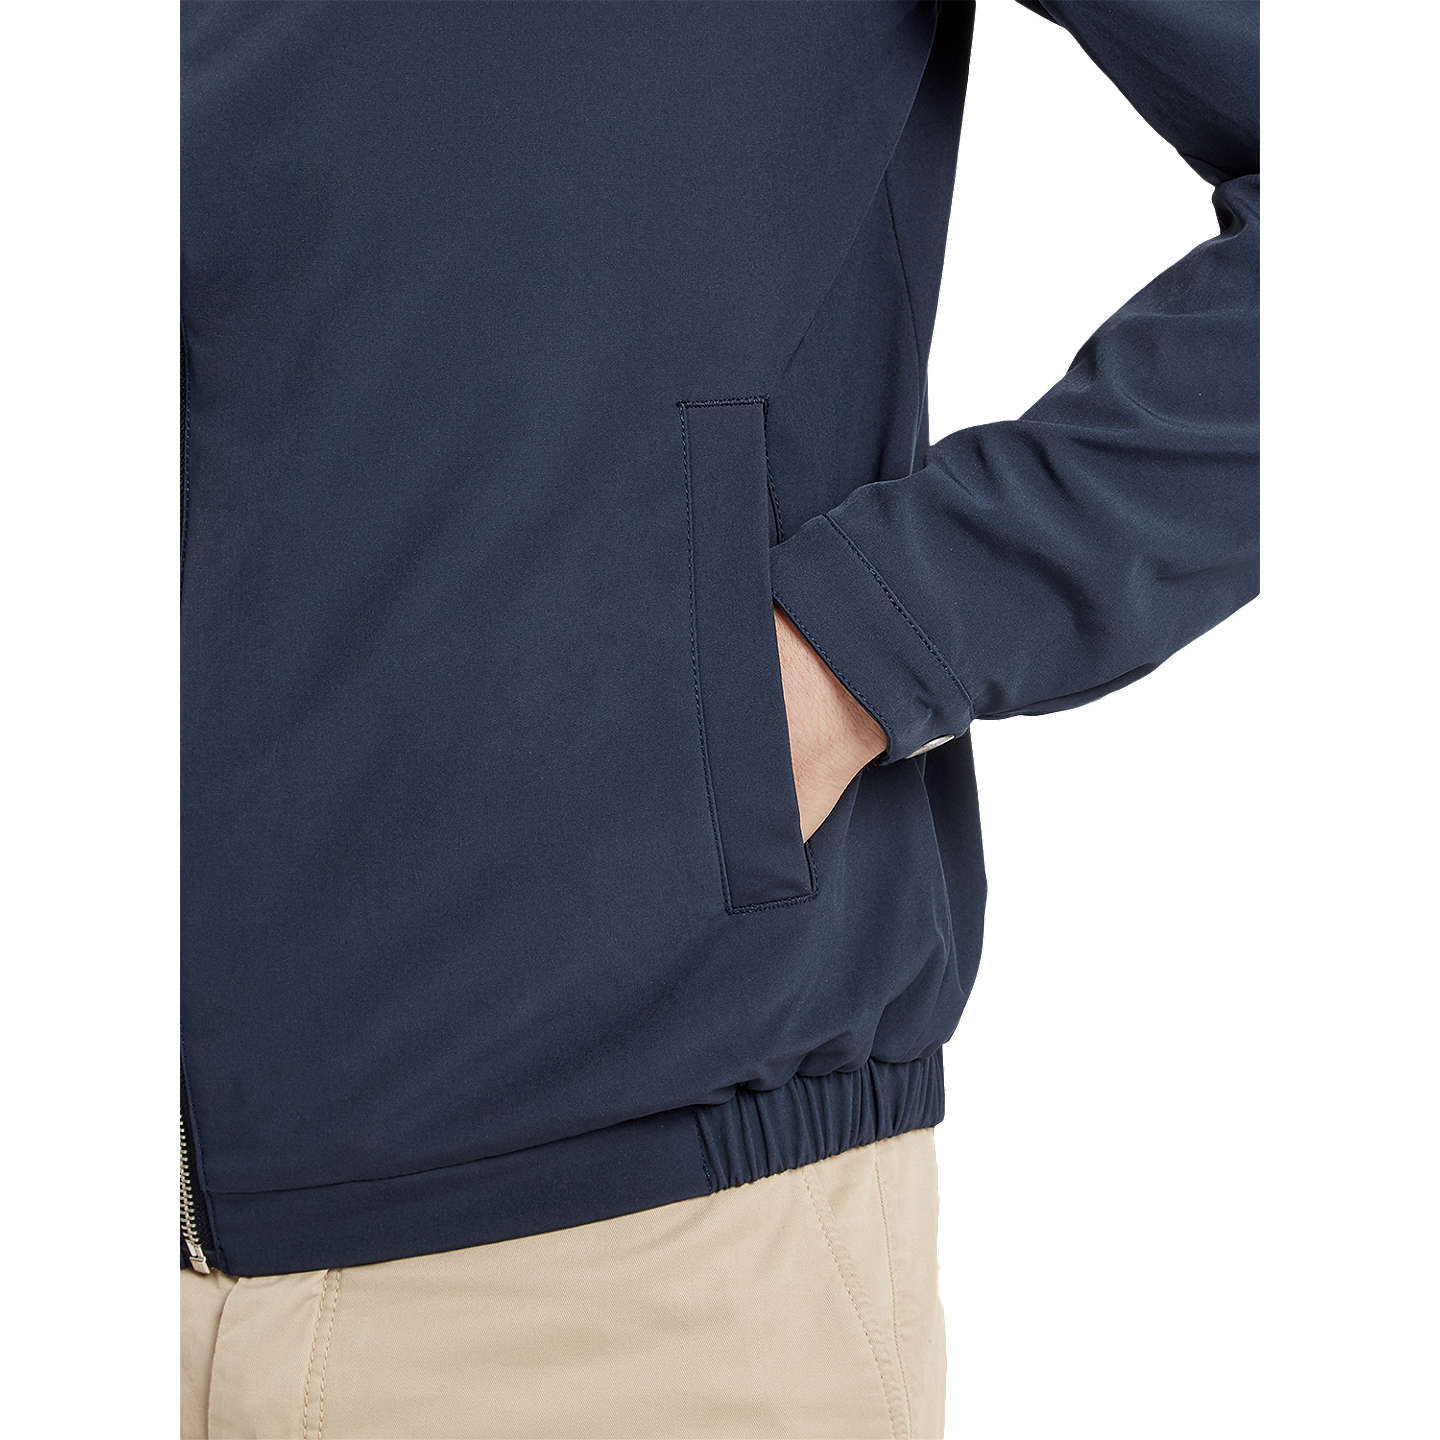 BuyLyle & Scott Jersey Lined Soft Shell Jacket, Navy, S Online at johnlewis.com